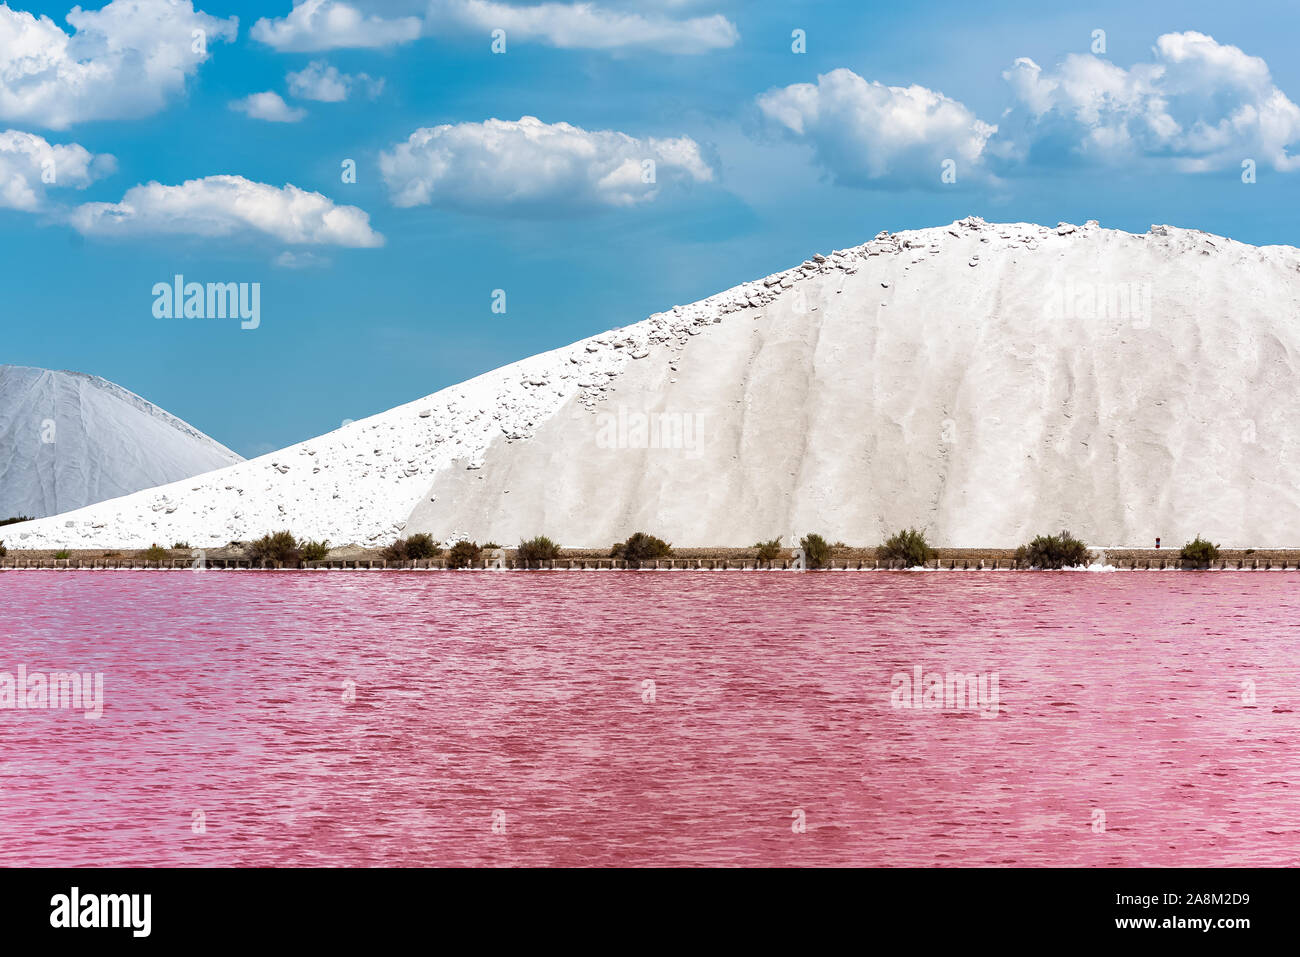 Aigues-Mortes, Salins du Midi, panorama with salt marshes and pink lakes Stock Photo